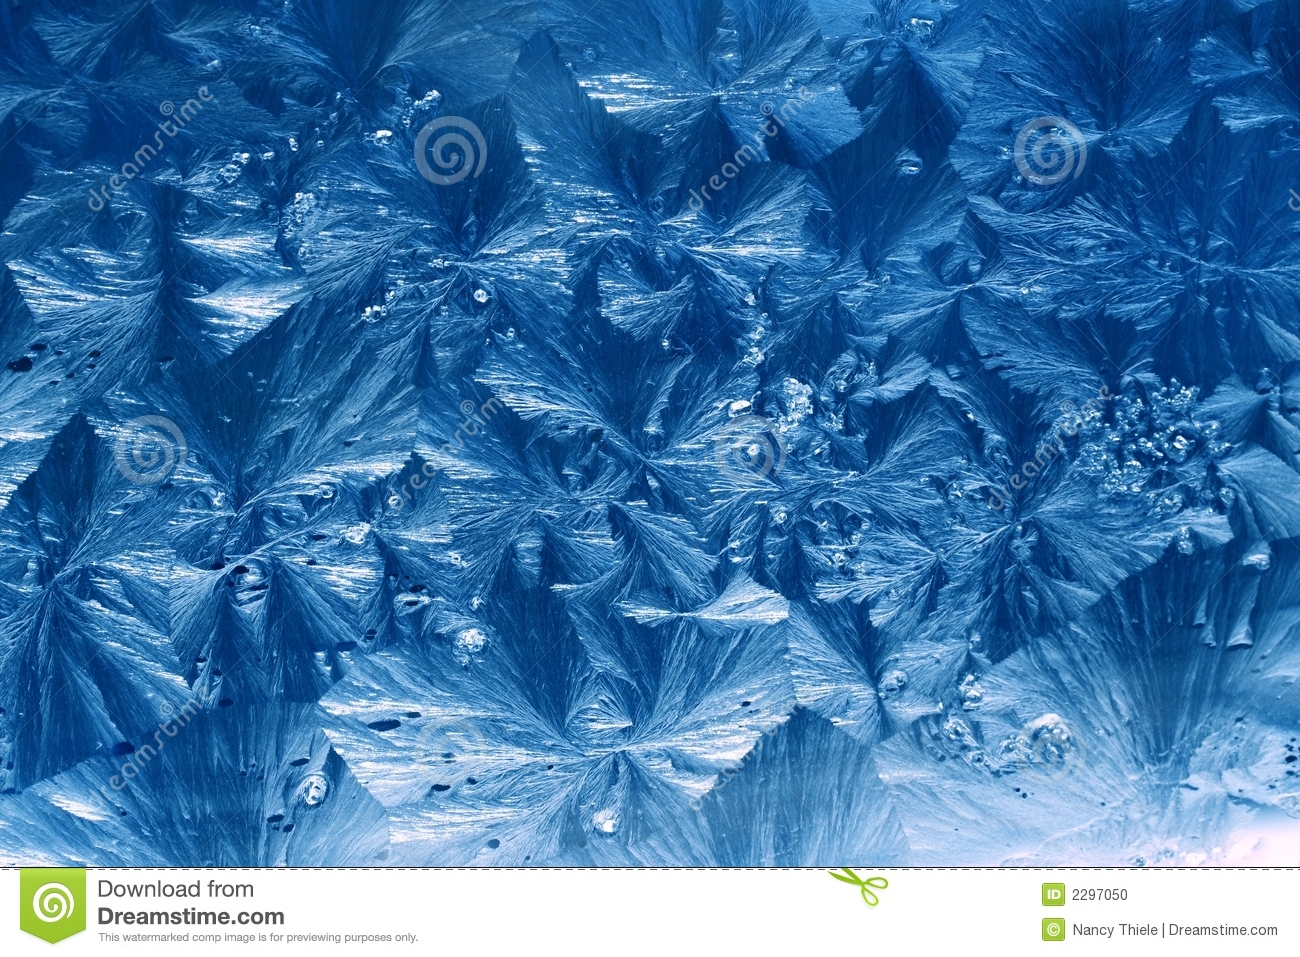 Christmas Snow Falling Wallpaper Jack Frost Ice Patterns Stock Photo Image Of Crystal